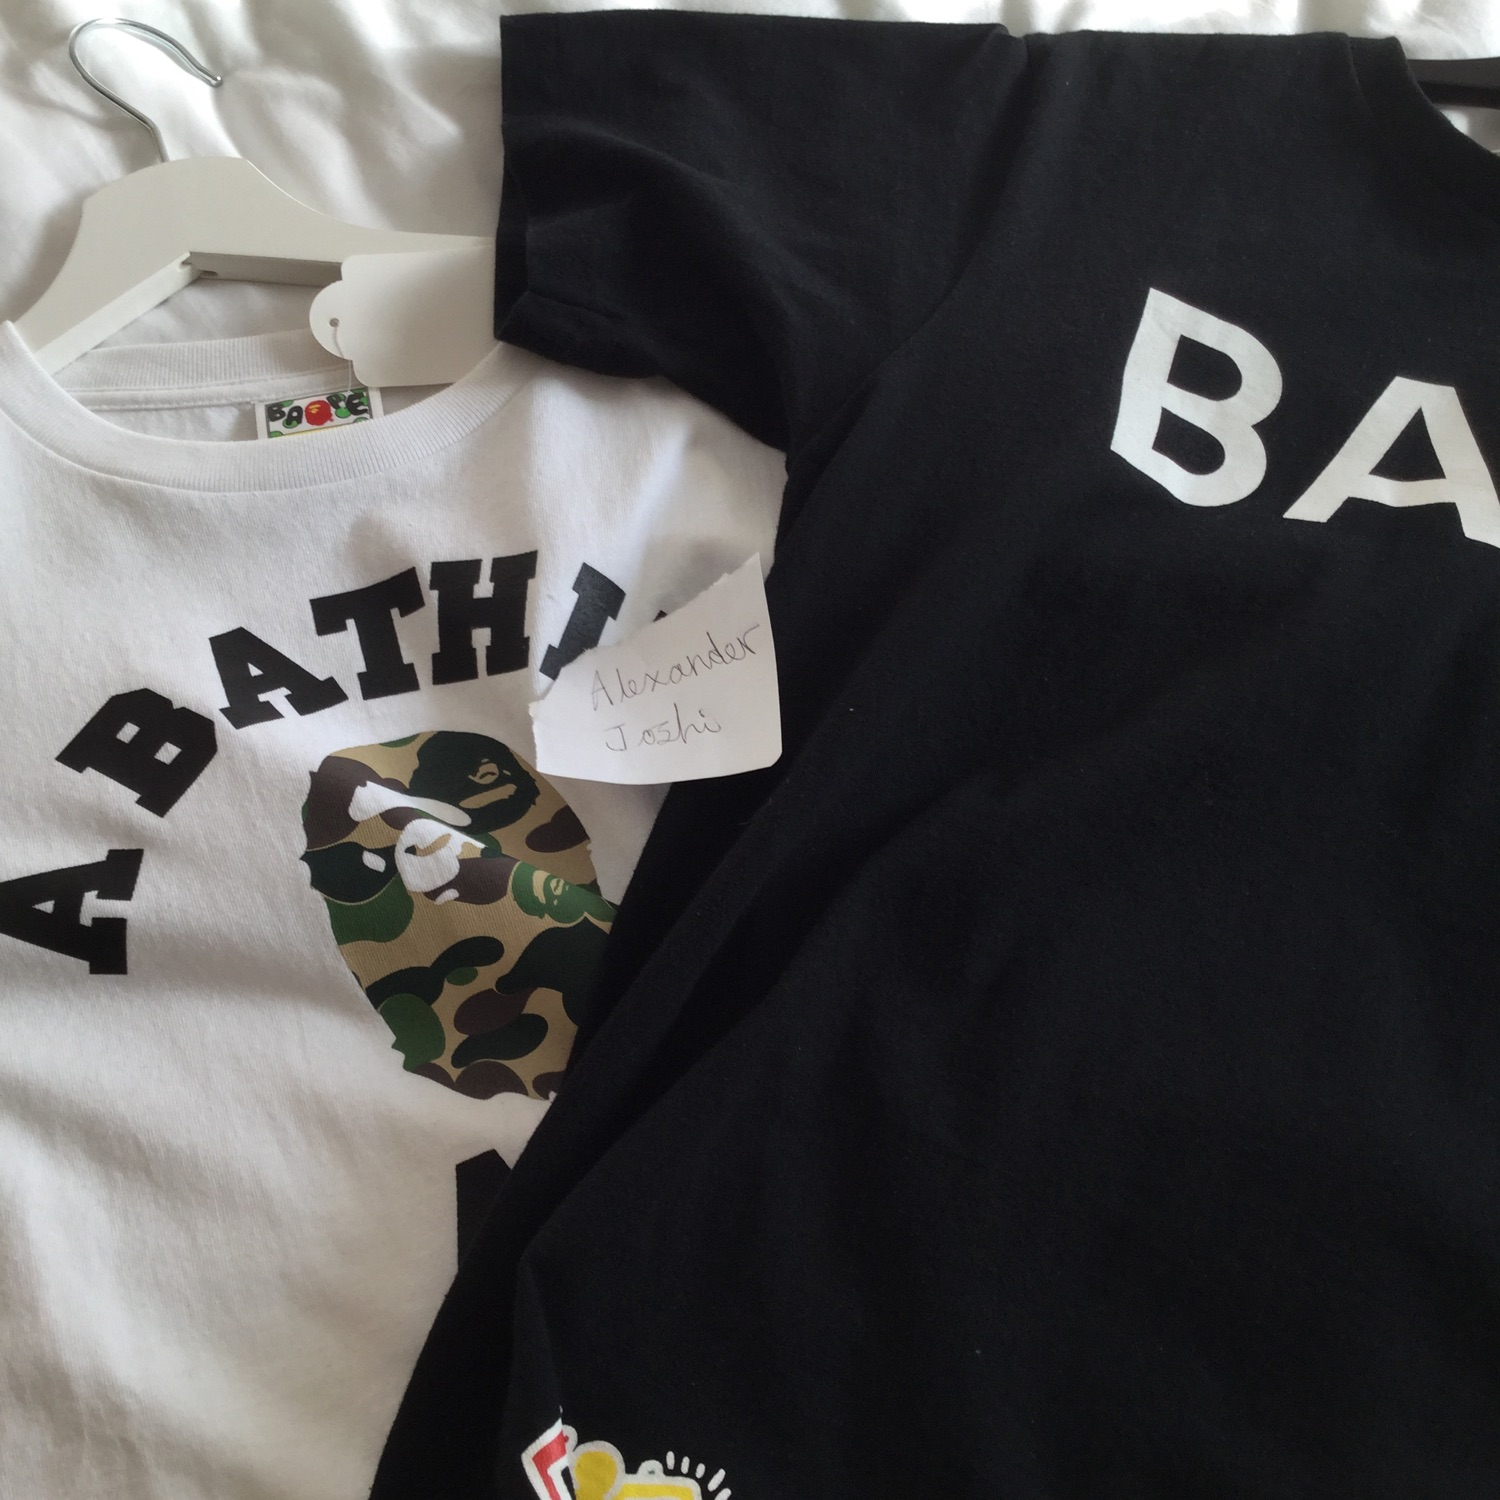 X2 Bape Tops   %100 Authentic   Steal!